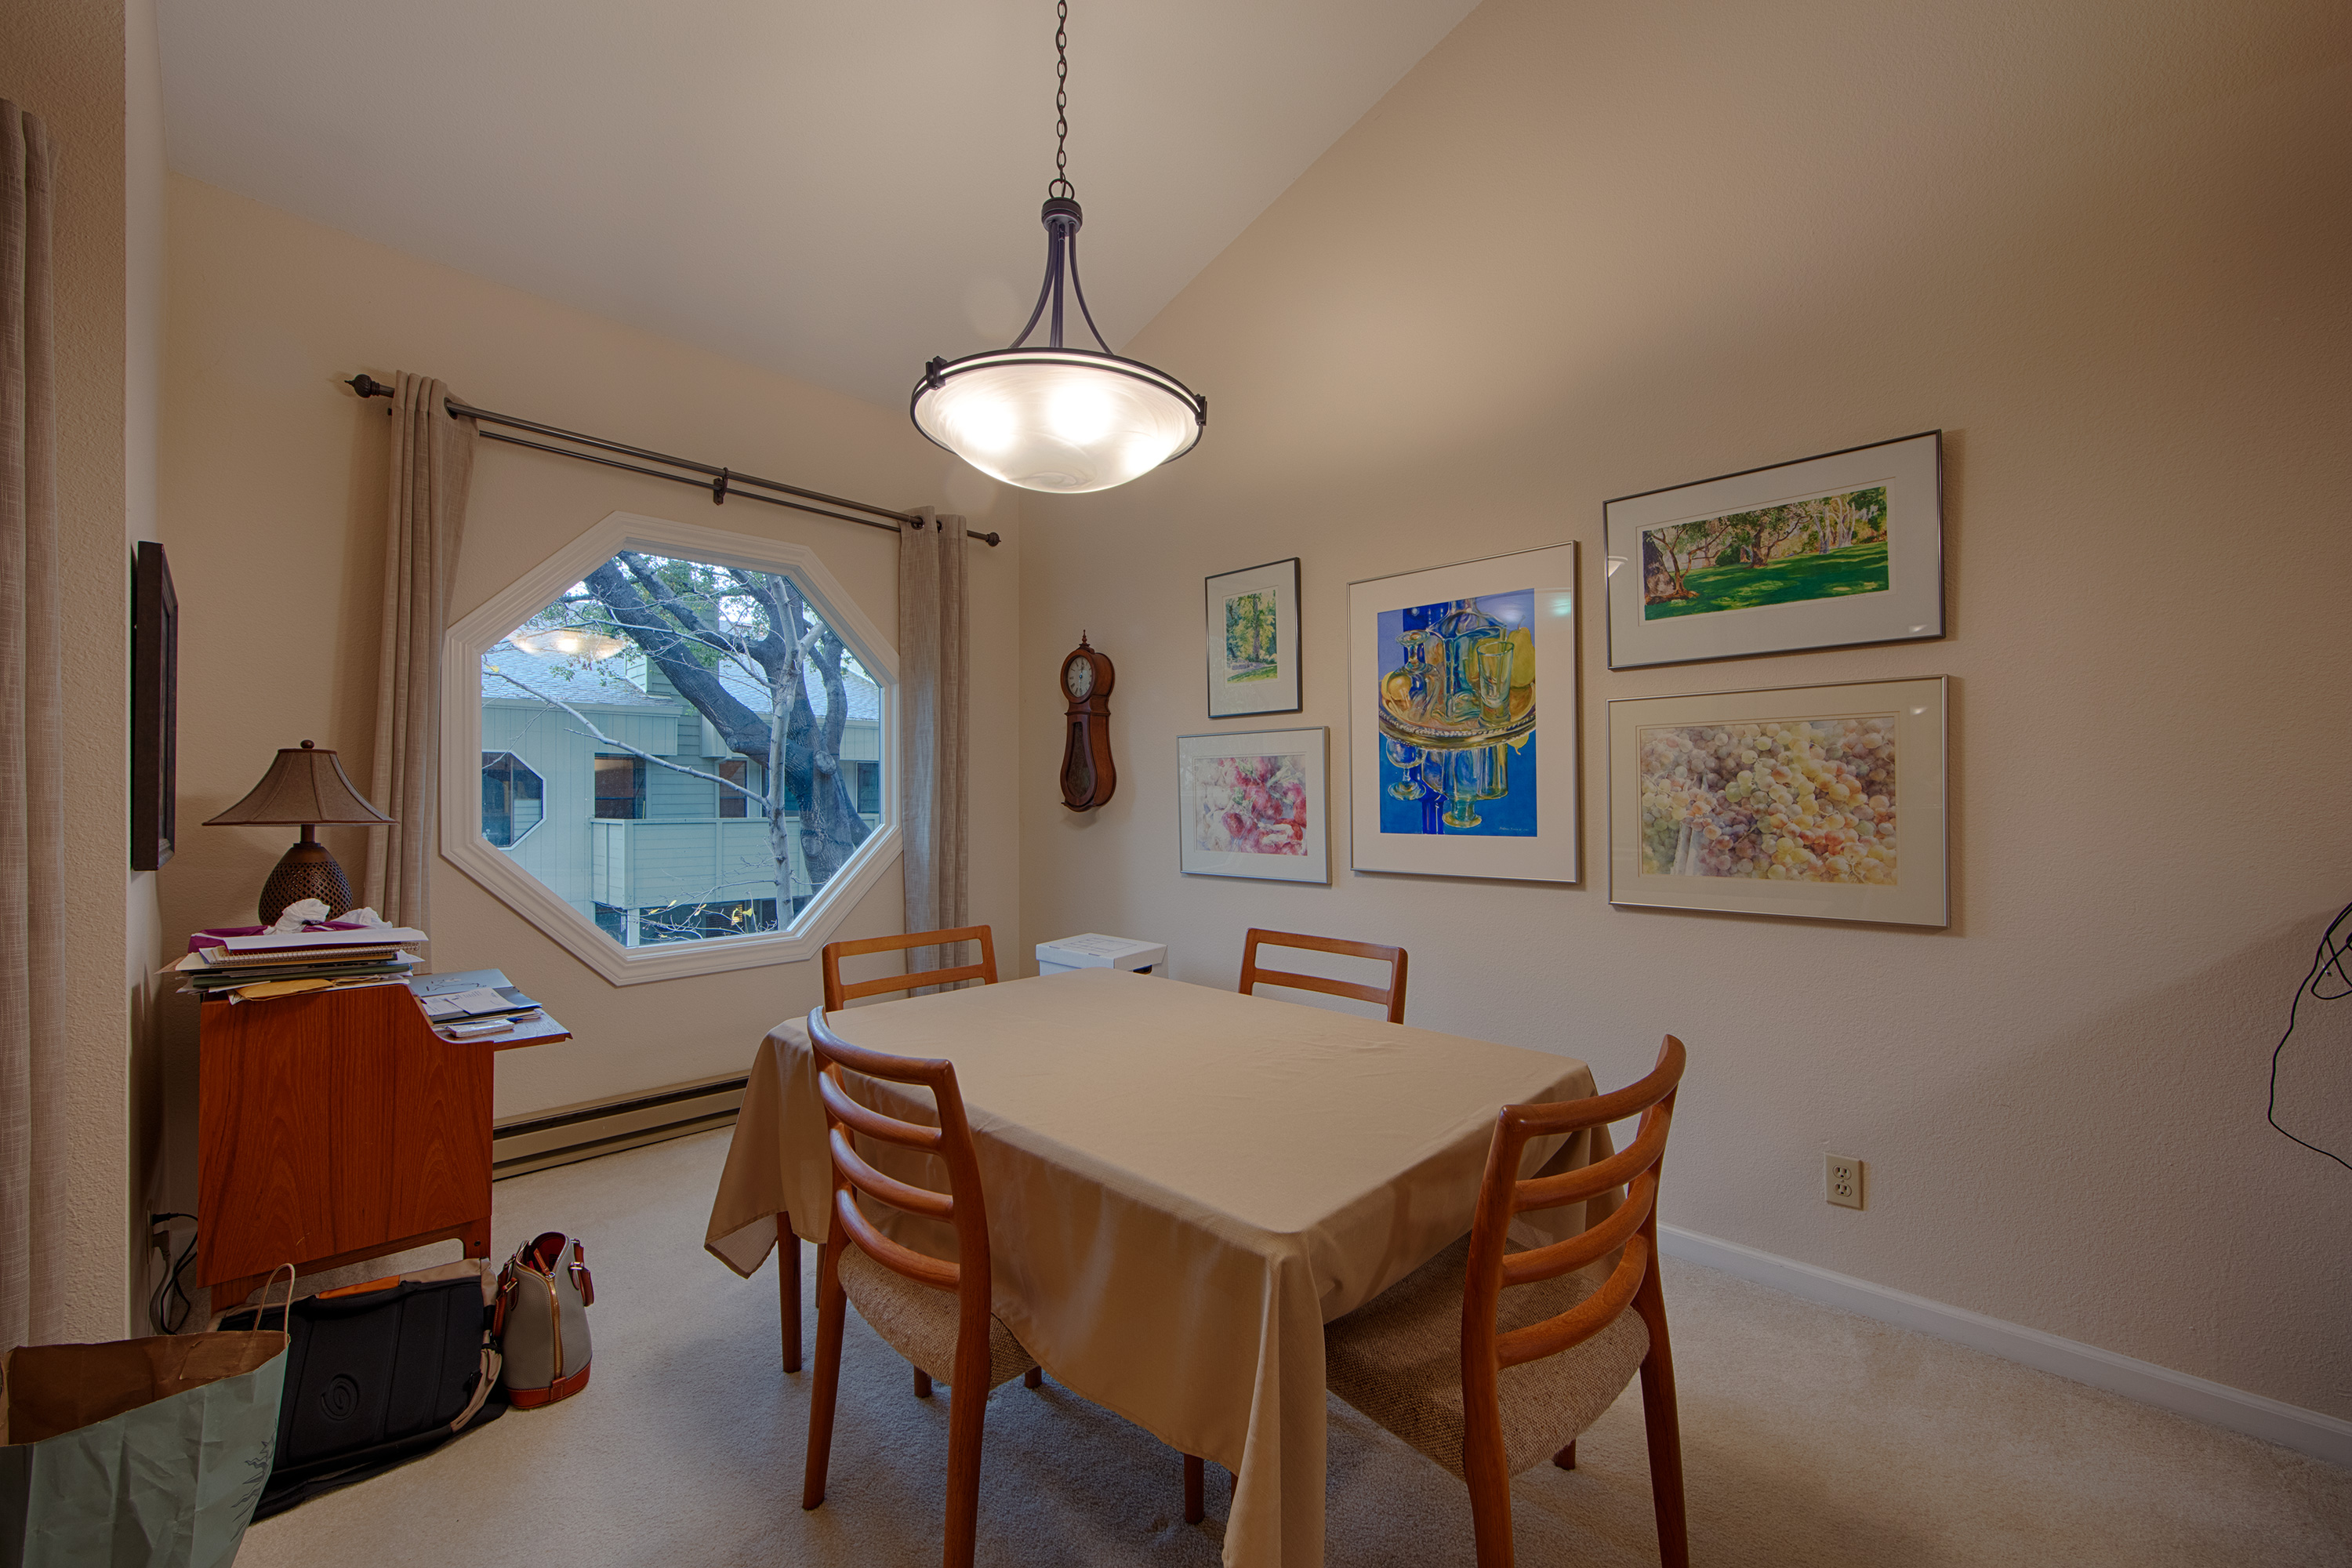 Dining Room  412 Crescent Ave, Unit 40, Sunnyvale 94087. Kitchen Pull Outs. Mission Style Kitchens. Vision Kitchen And Bath. Kitchen Wood Floor. Holiday Kitchen Curtains. Retro Kitchen Utensils. Kitchen With Granite. Modern Pendant Lighting For Kitchen